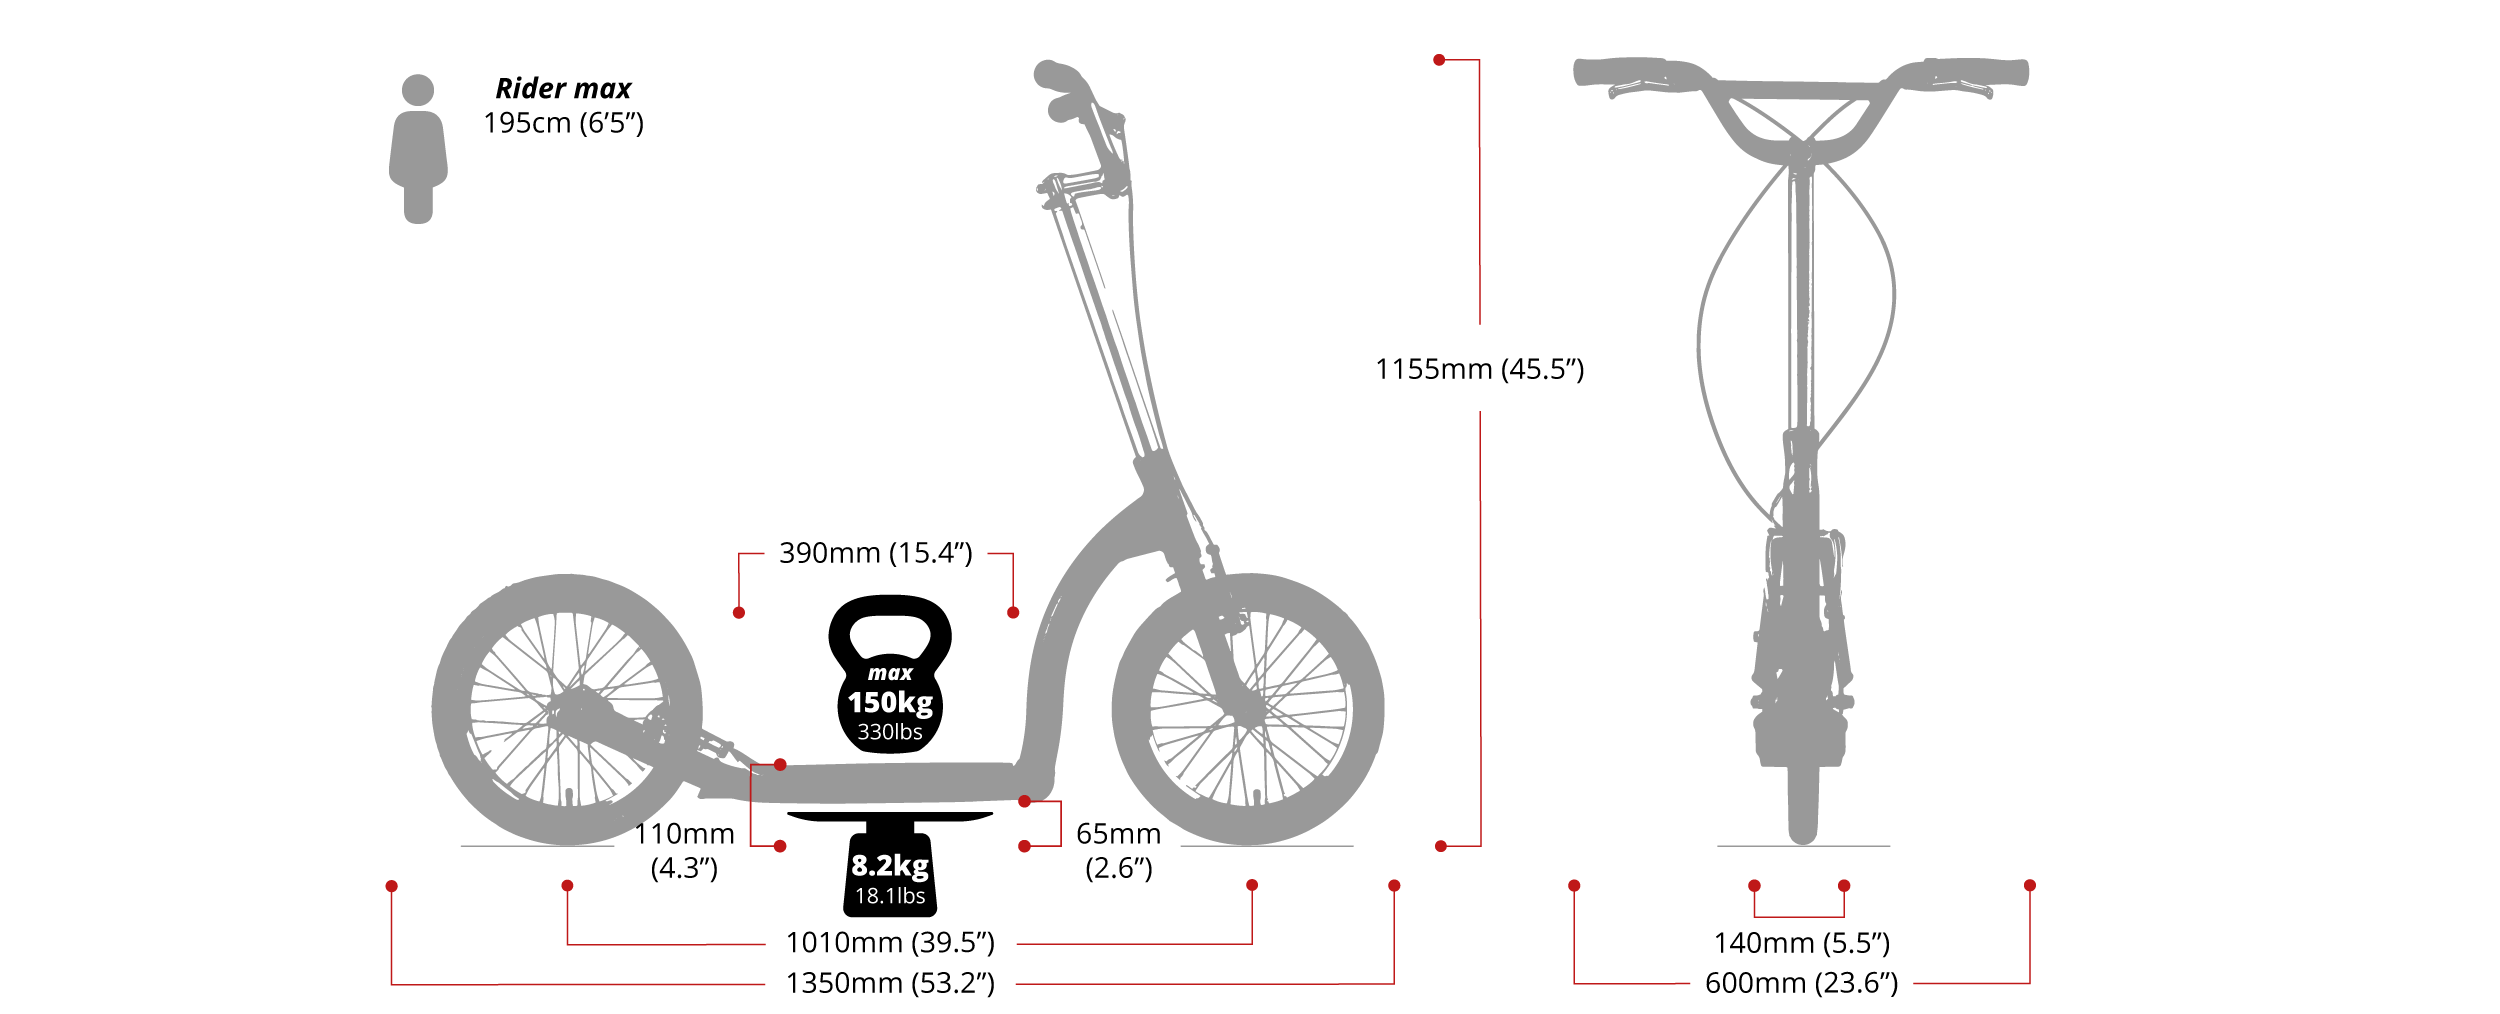 kick scooters for heavy adults, scooter for tall people, scooter for adult over 100kg